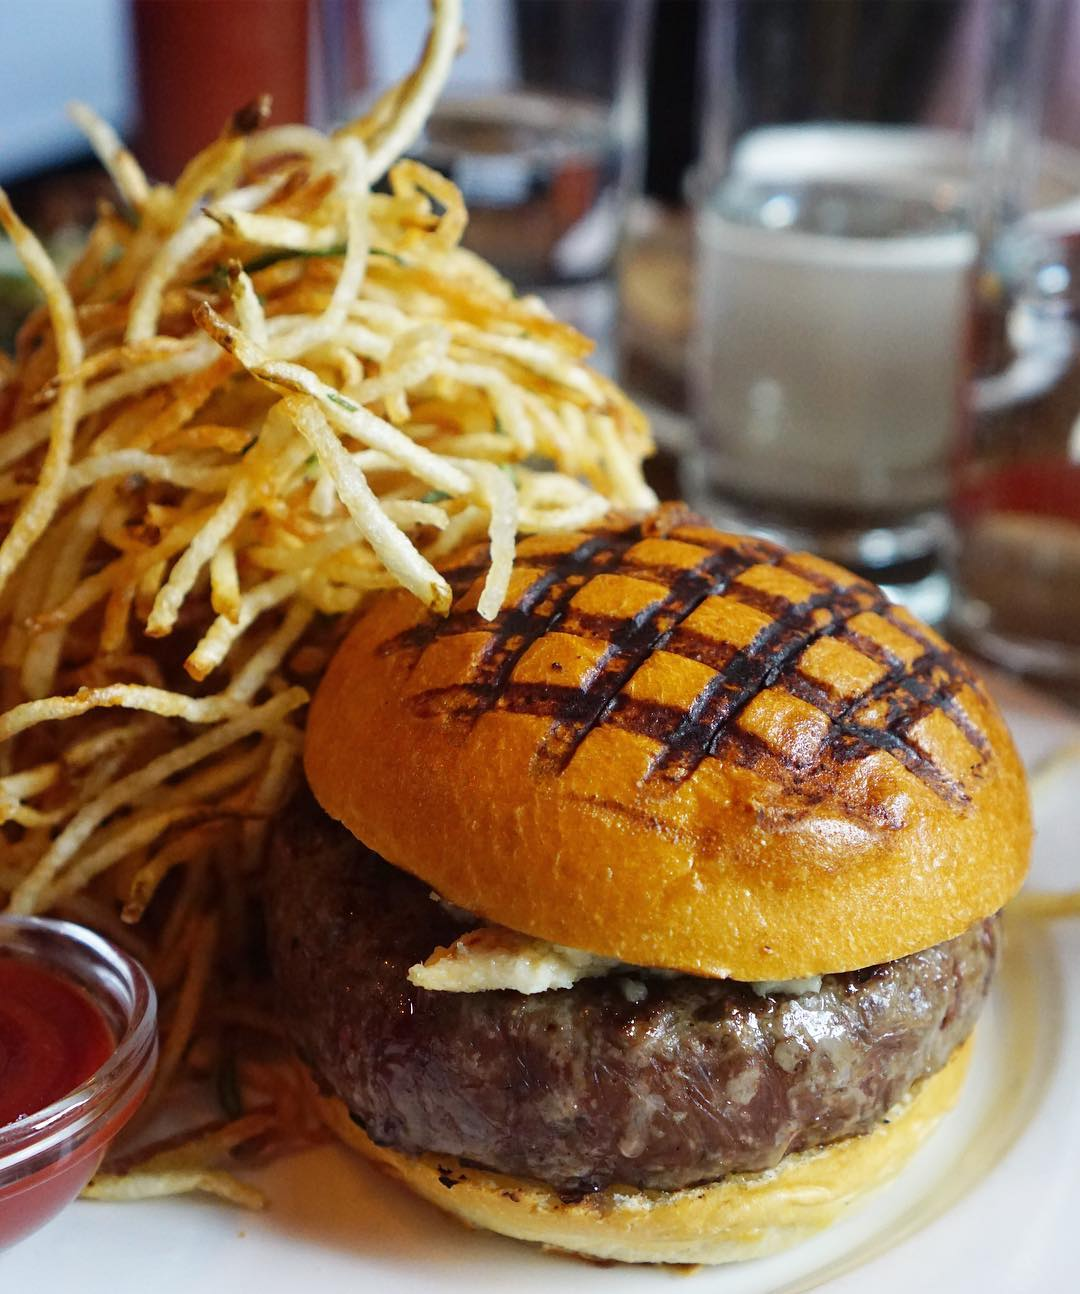 Kaitlin Menza Best Burgers Nyc Burger Joints New York City